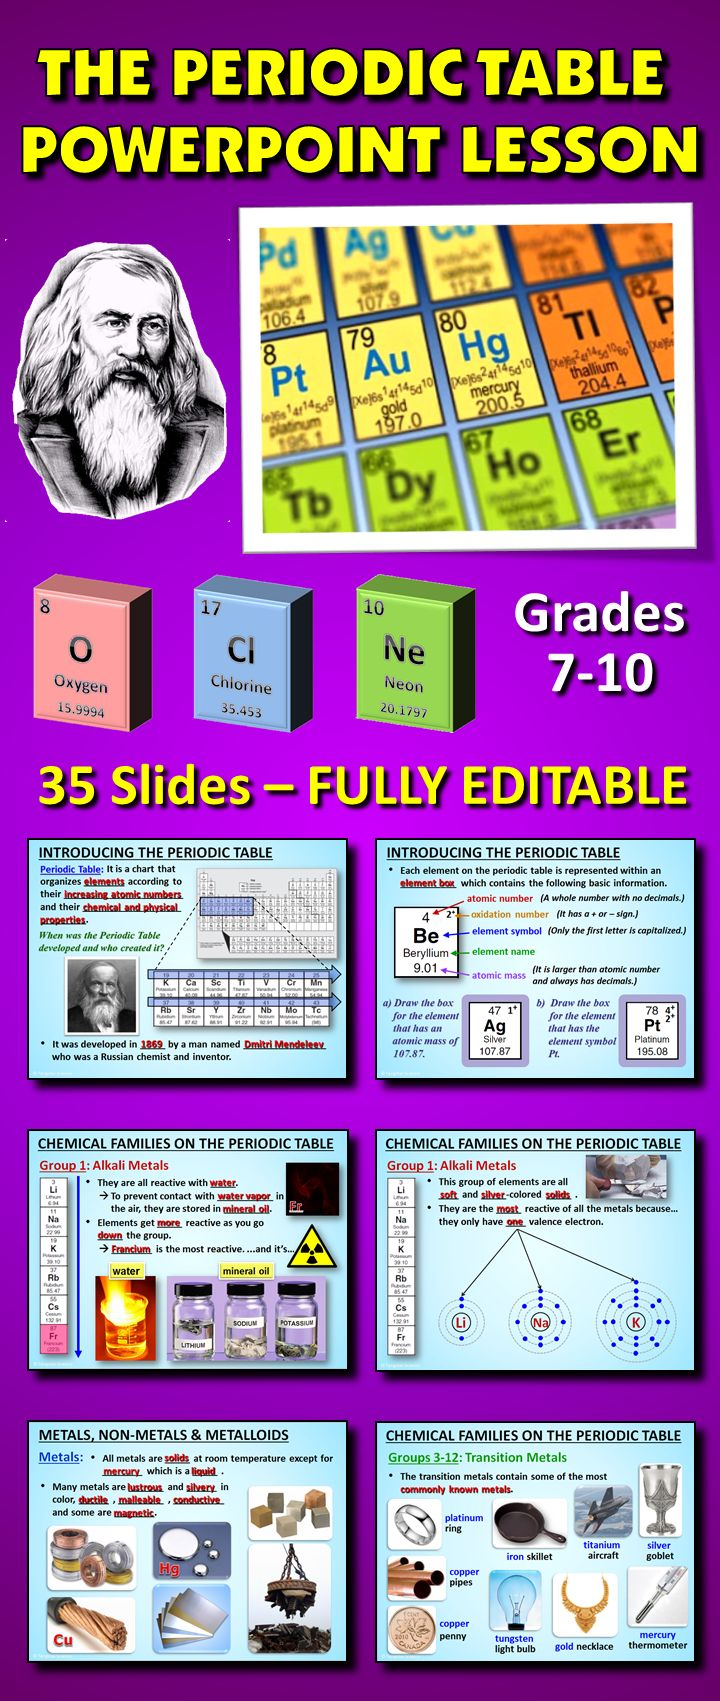 This EDITABLE POWERPOINT contains 35 SLIDES on the Periodic Table. Using great graphics and an effective lesson sequence, this PowerPoint takes students through the creation of the periodic table, the information found on the periodic table, the structure of the periodic table, and the properties of groups of elements and chemical families found on the periodic table.